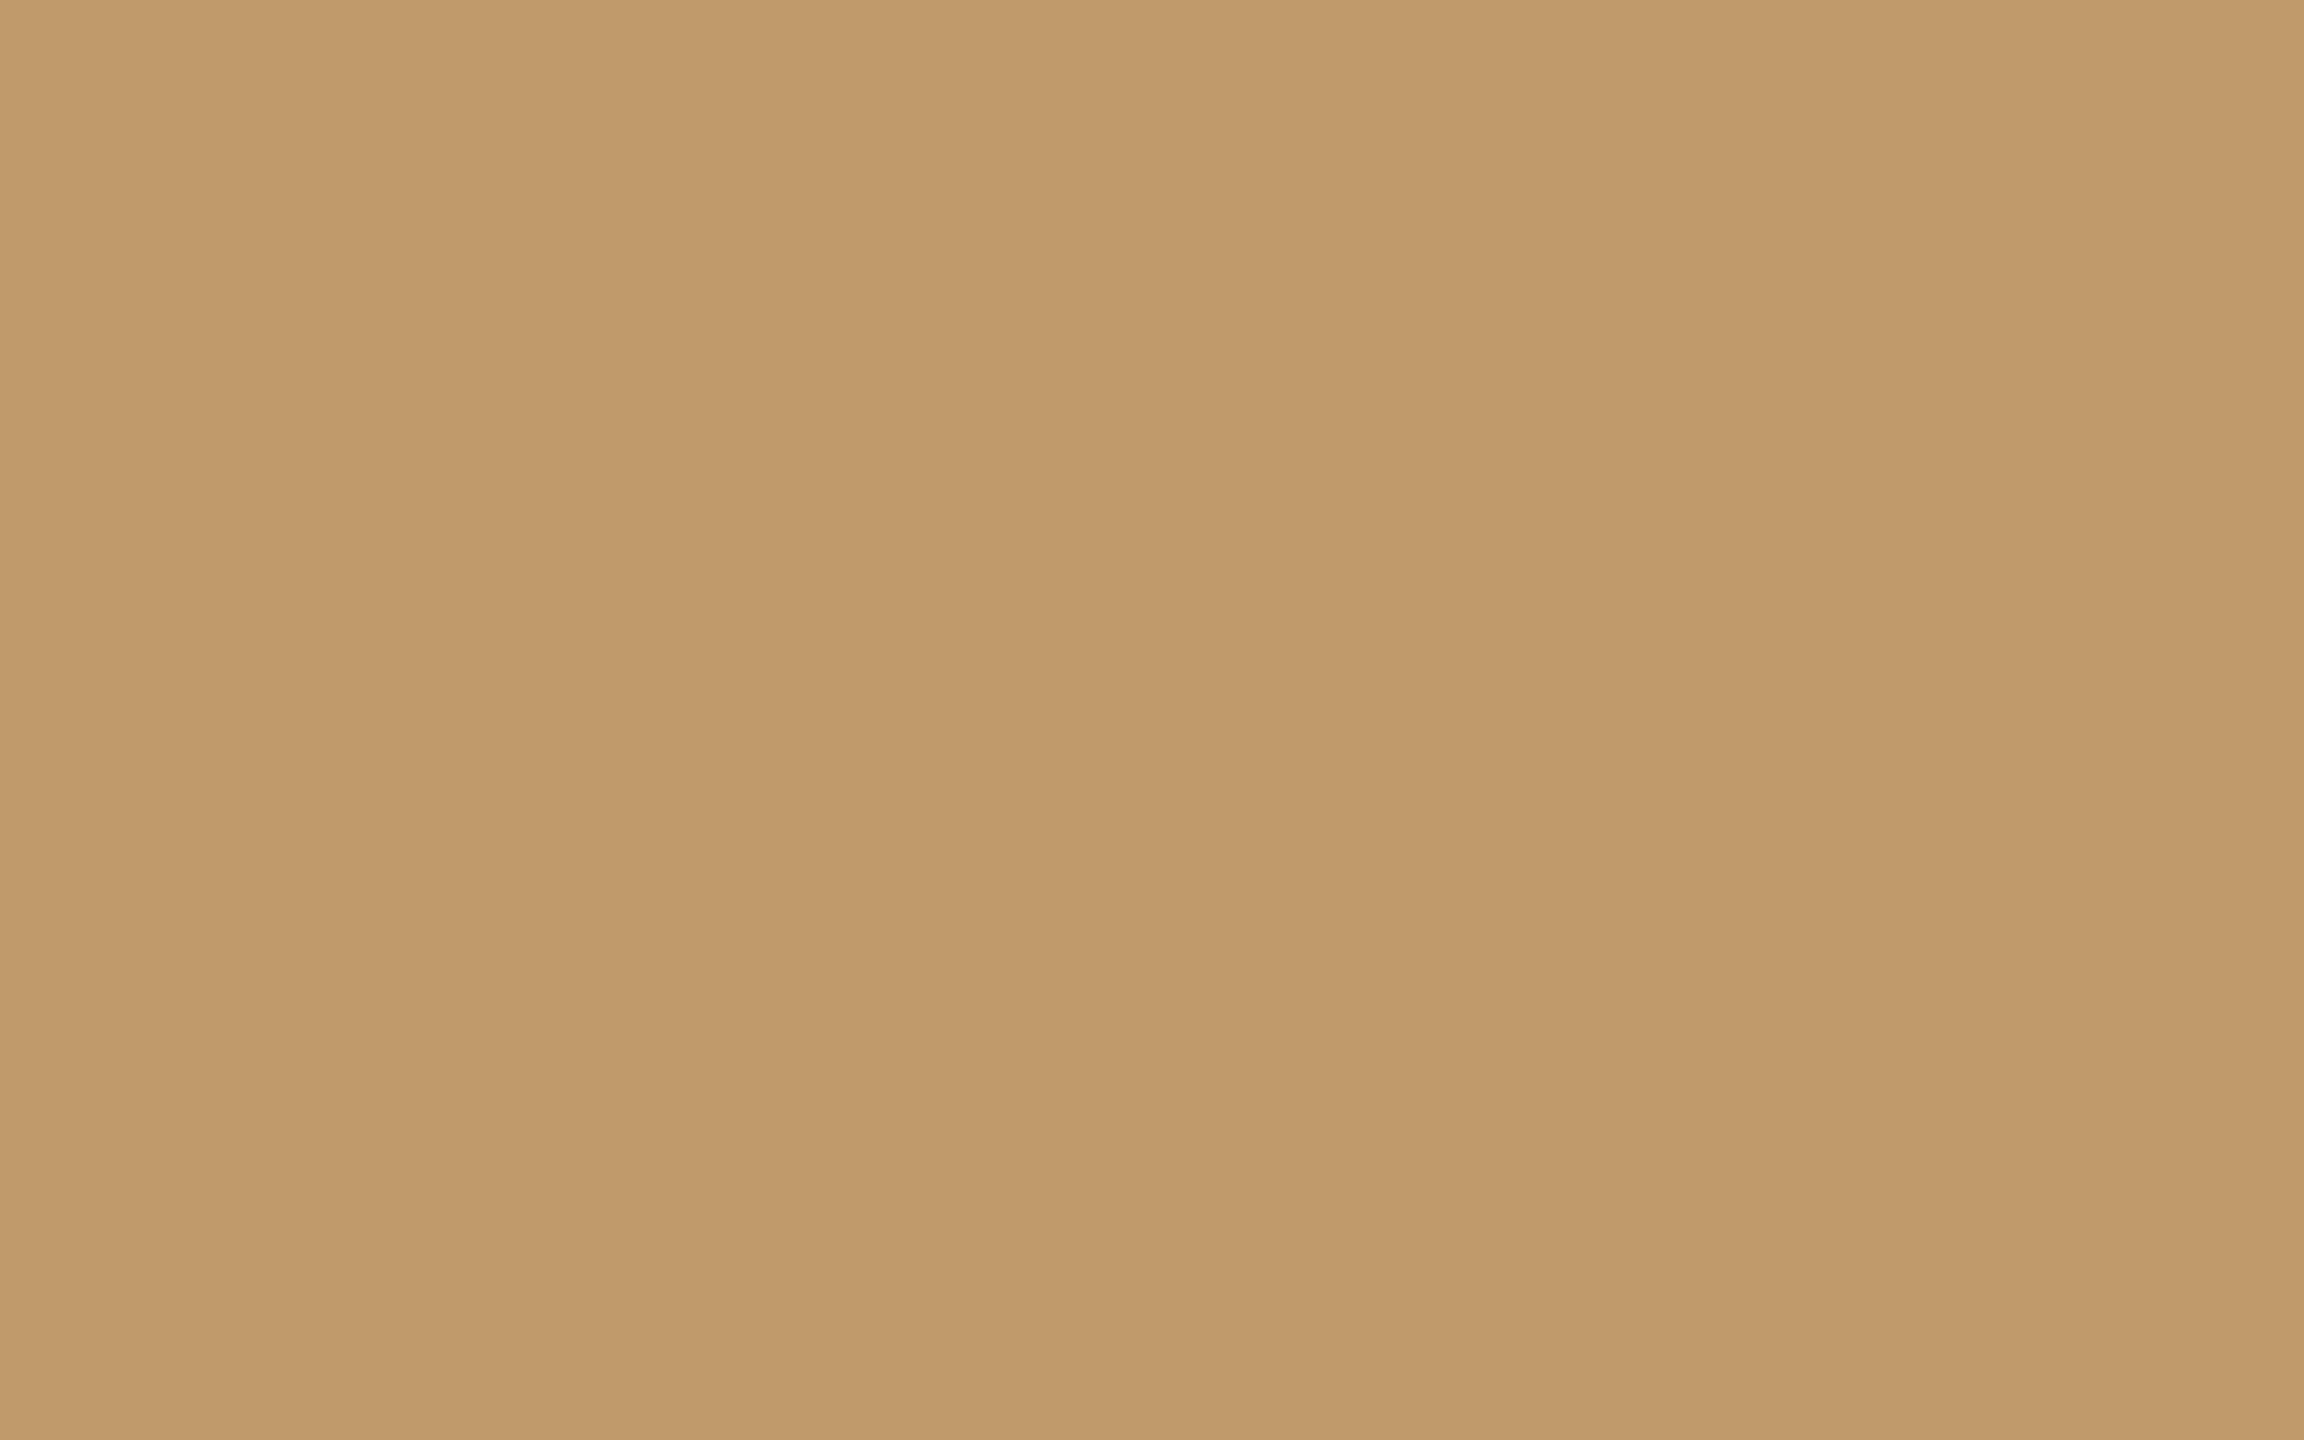 2304x1440 Camel Solid Color Background